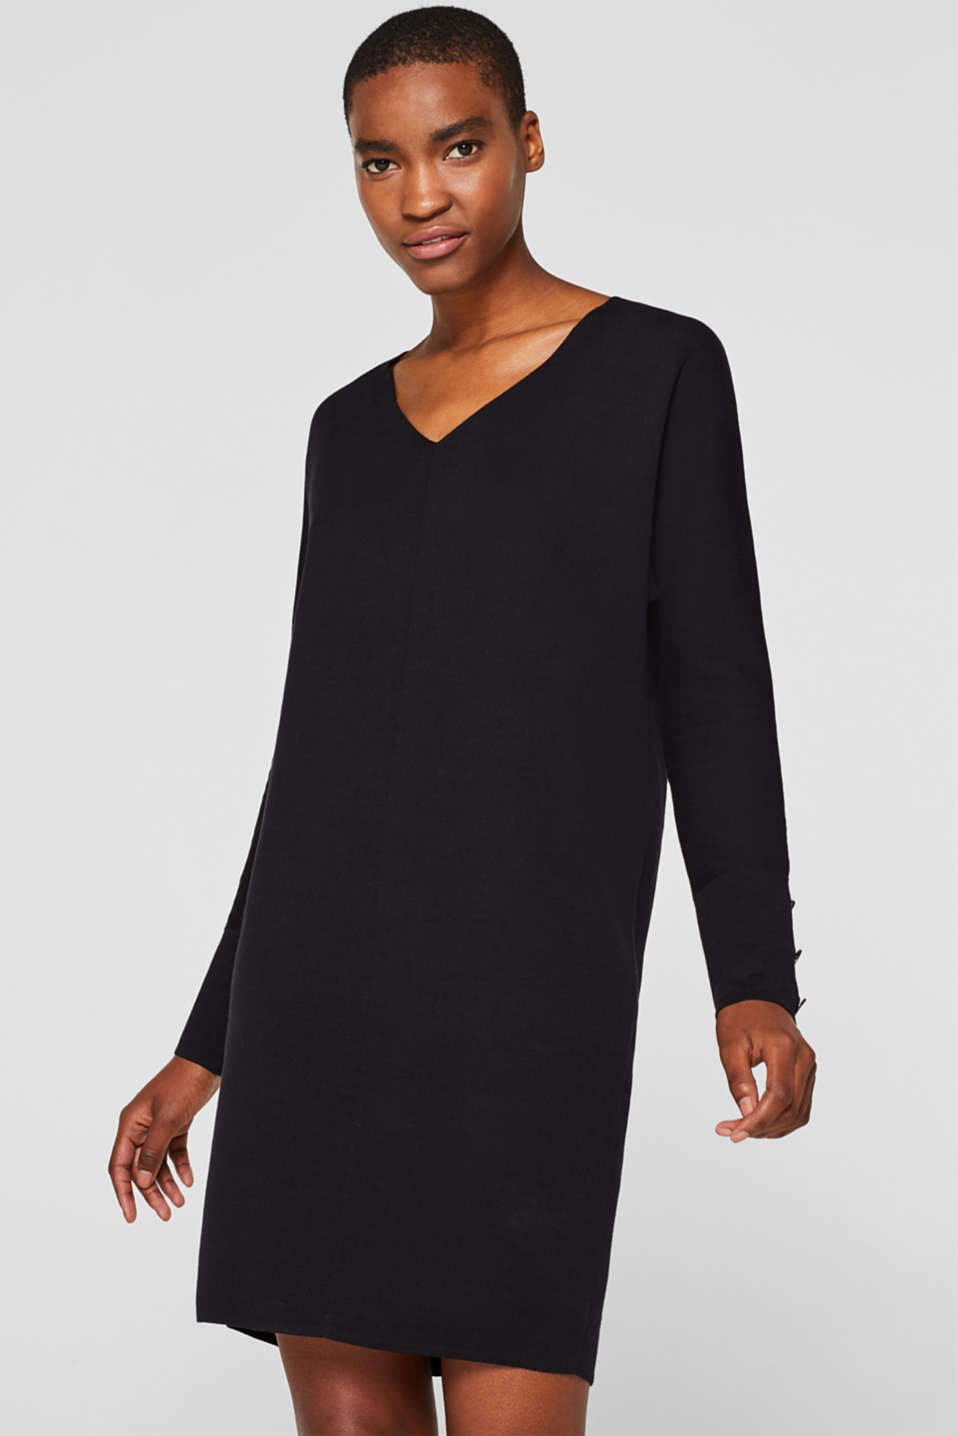 Knit dress with a bow, stretch cotton, BLACK, detail image number 0